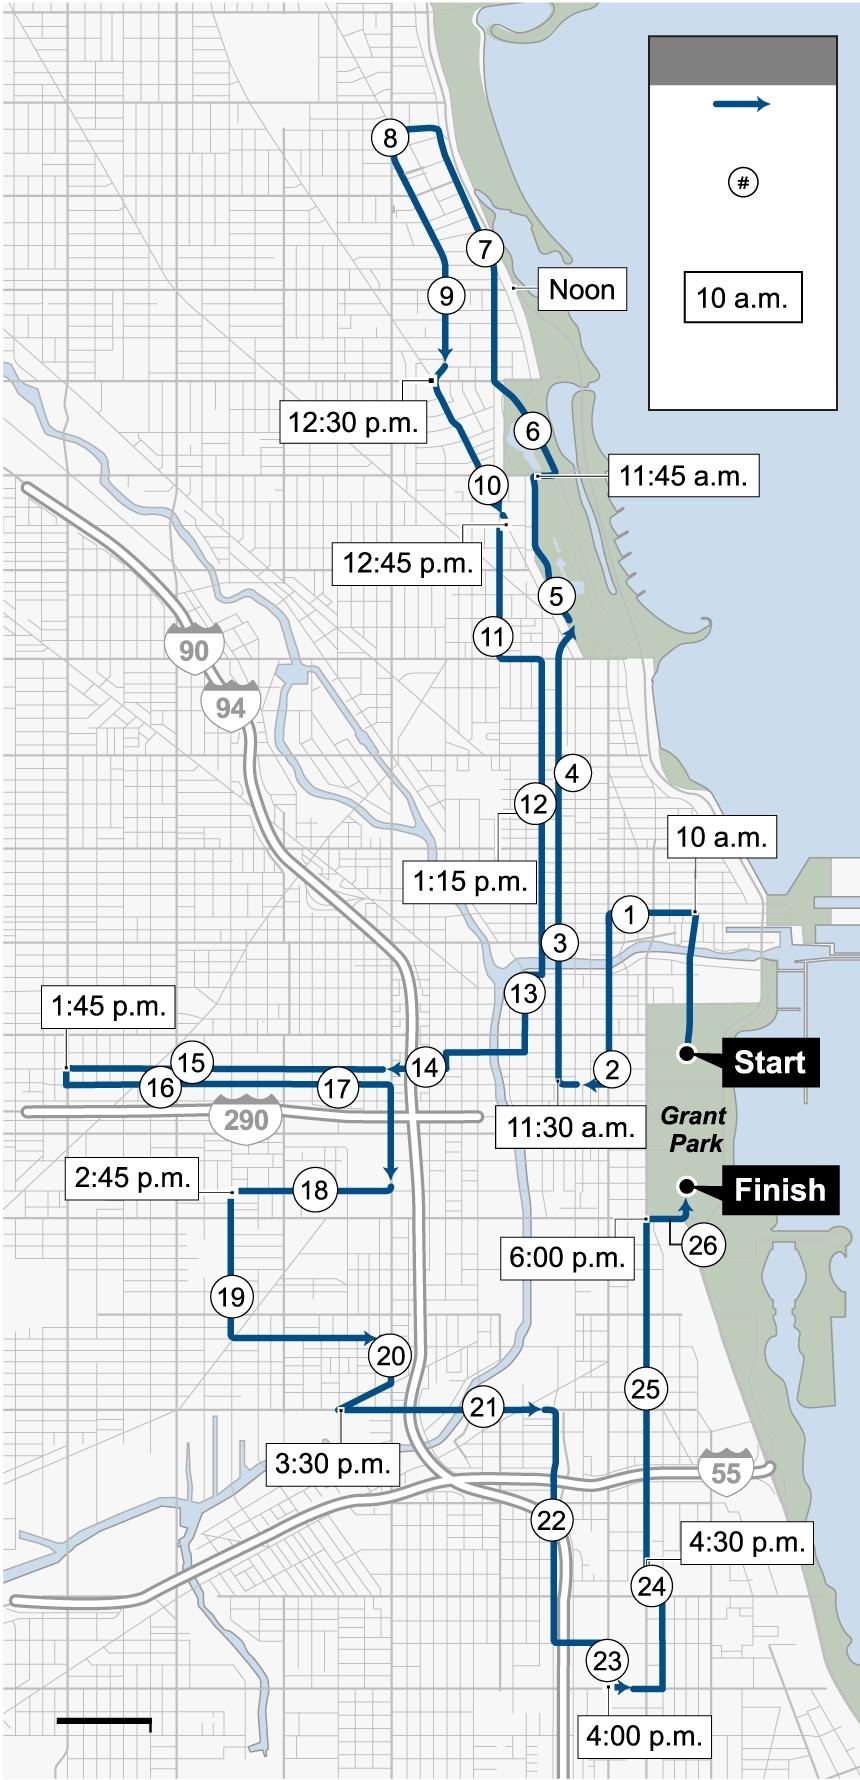 Chicago Marathon 2019: Course Map, Where To Watch The Race with Chicago Marathon 2019 Route Map